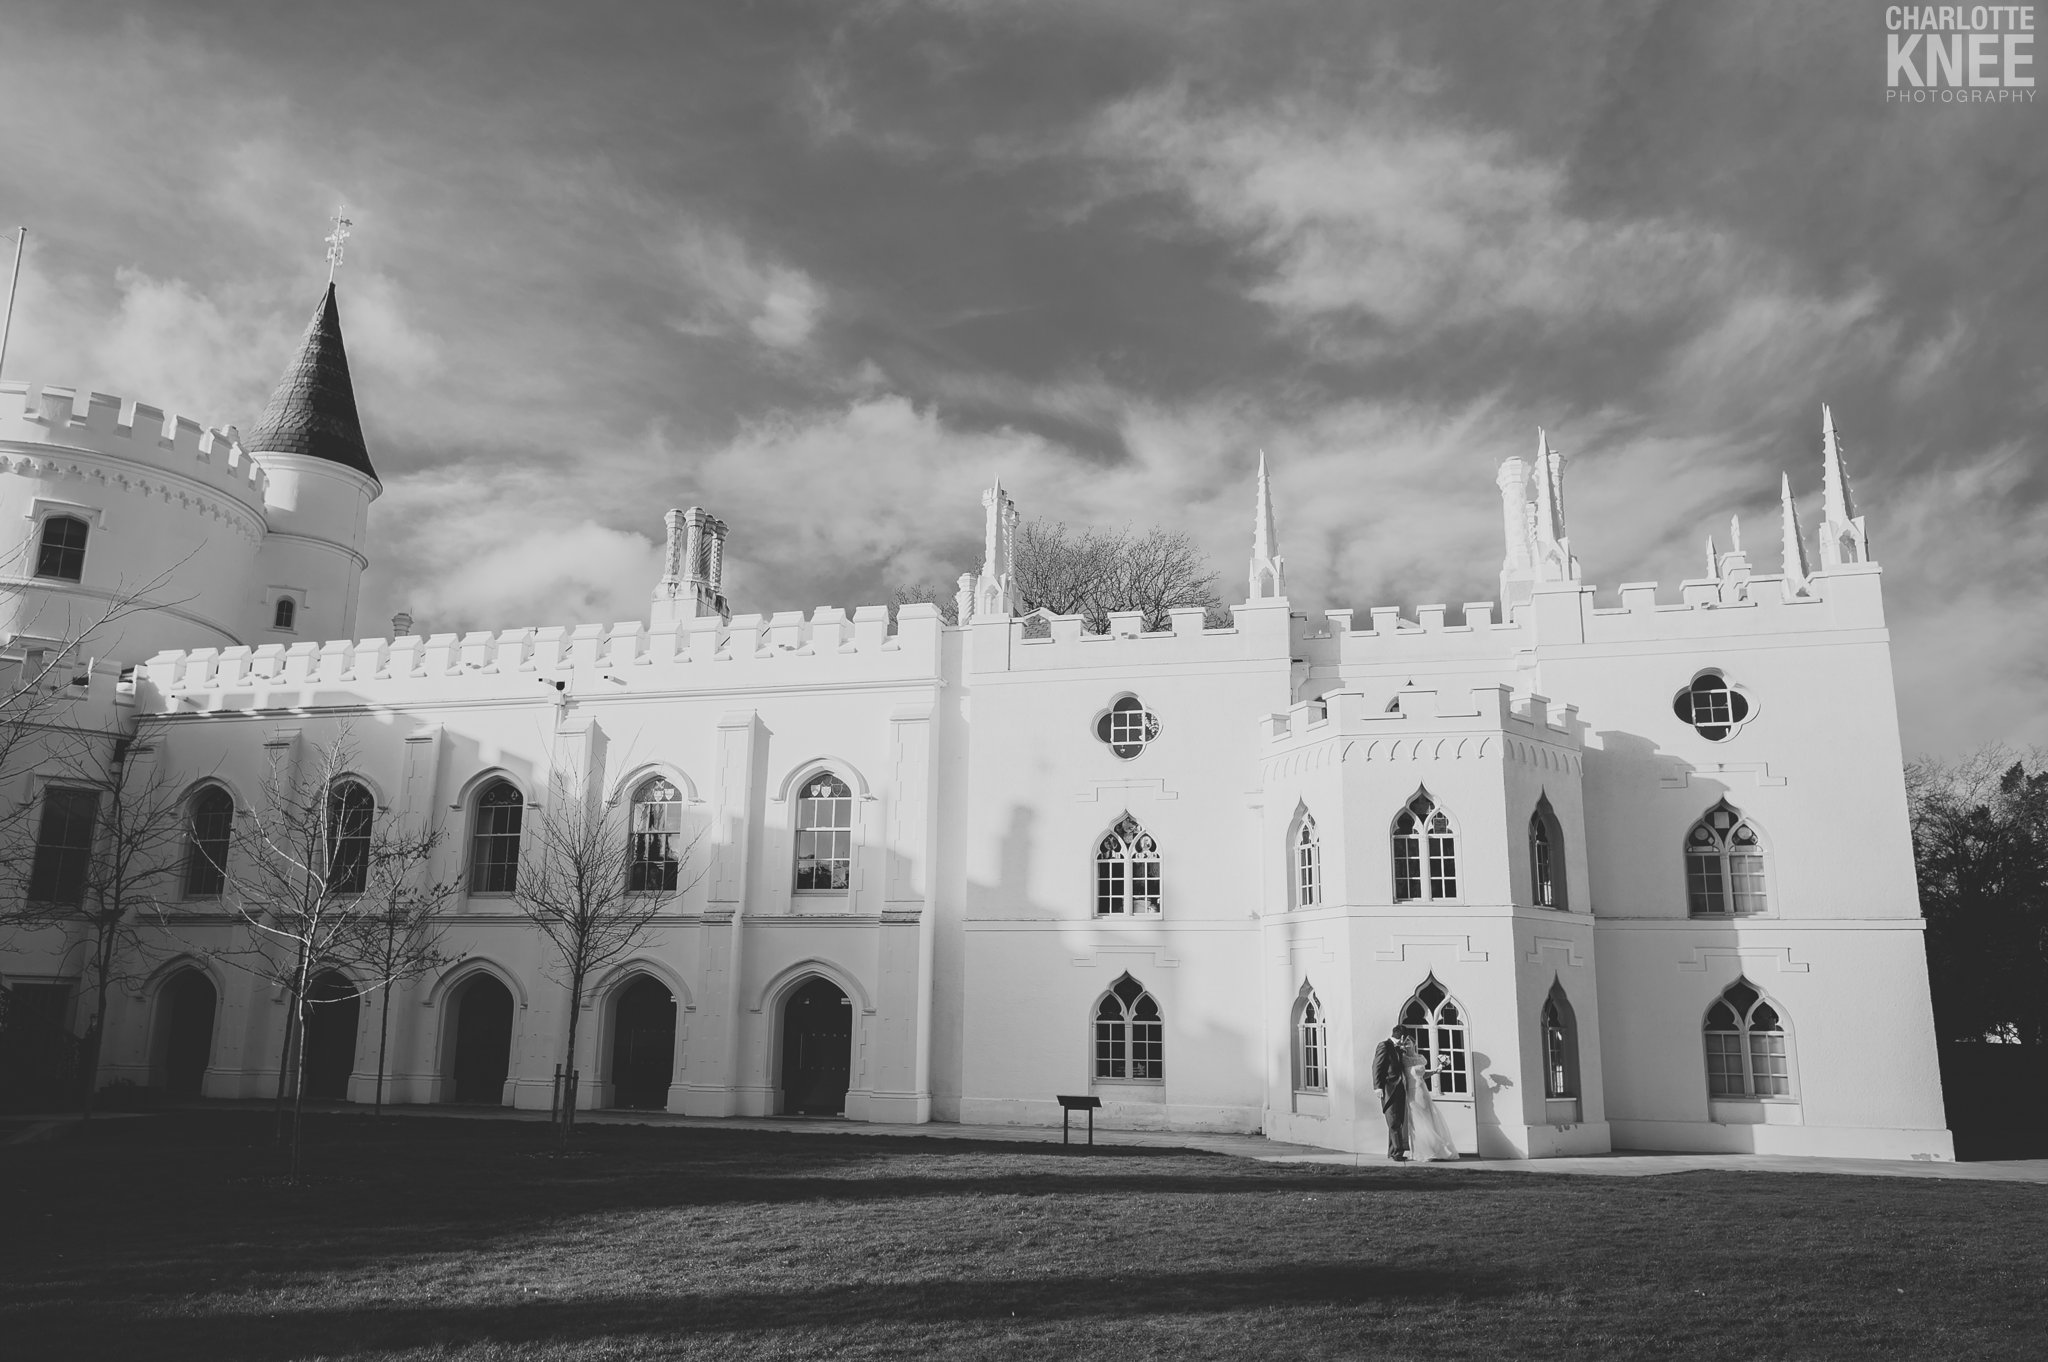 LONDON-WEDDING-PHOTOGRAPHY-STRAWBERRY-HILL-HOUSE-Charlotte-Knee-Photography_0059.jpg